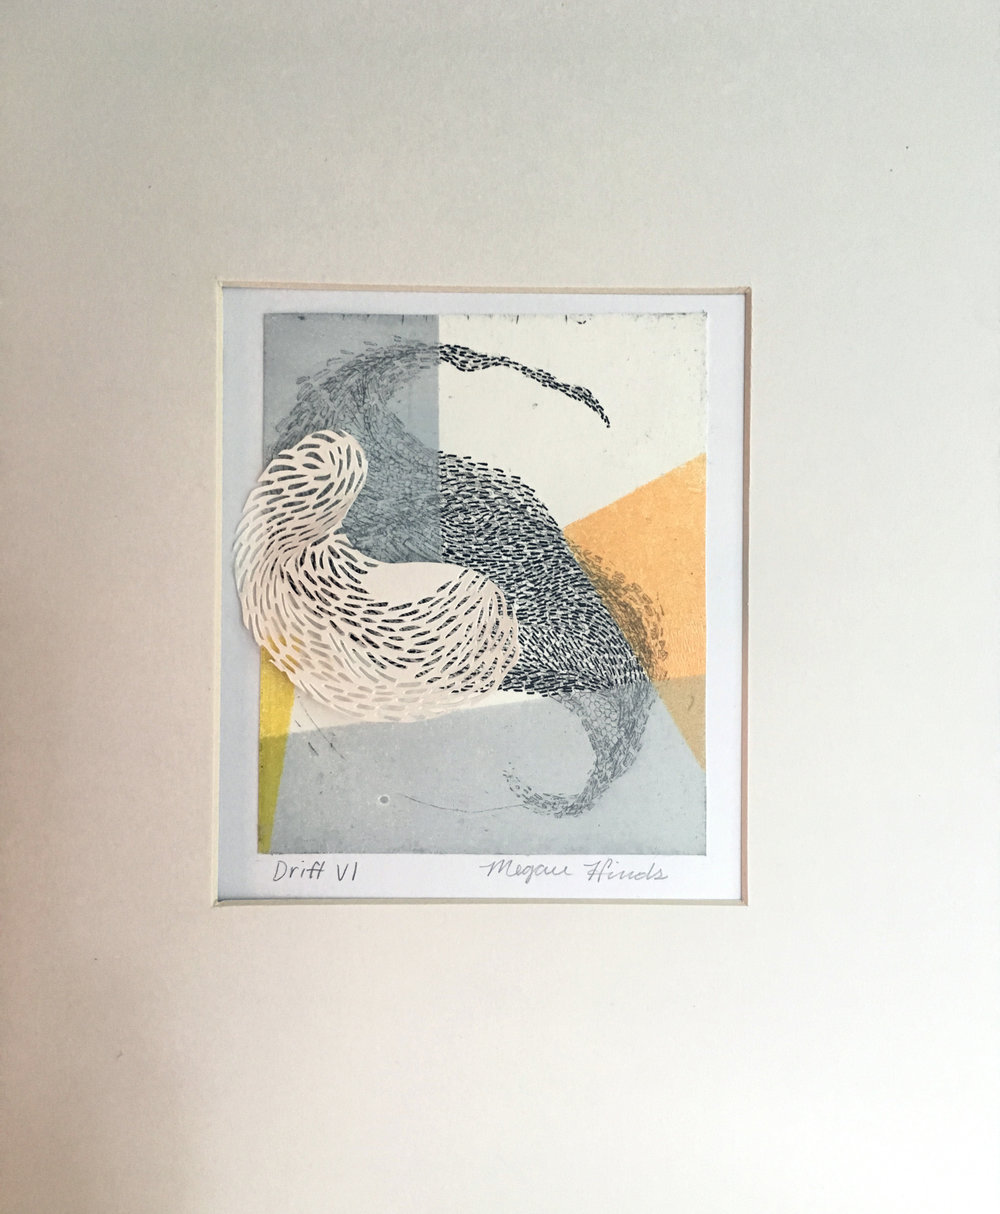 "Drift VI   Monotype, copper etching, hand cut paper   8"" x 10"" x 2""  Sold"